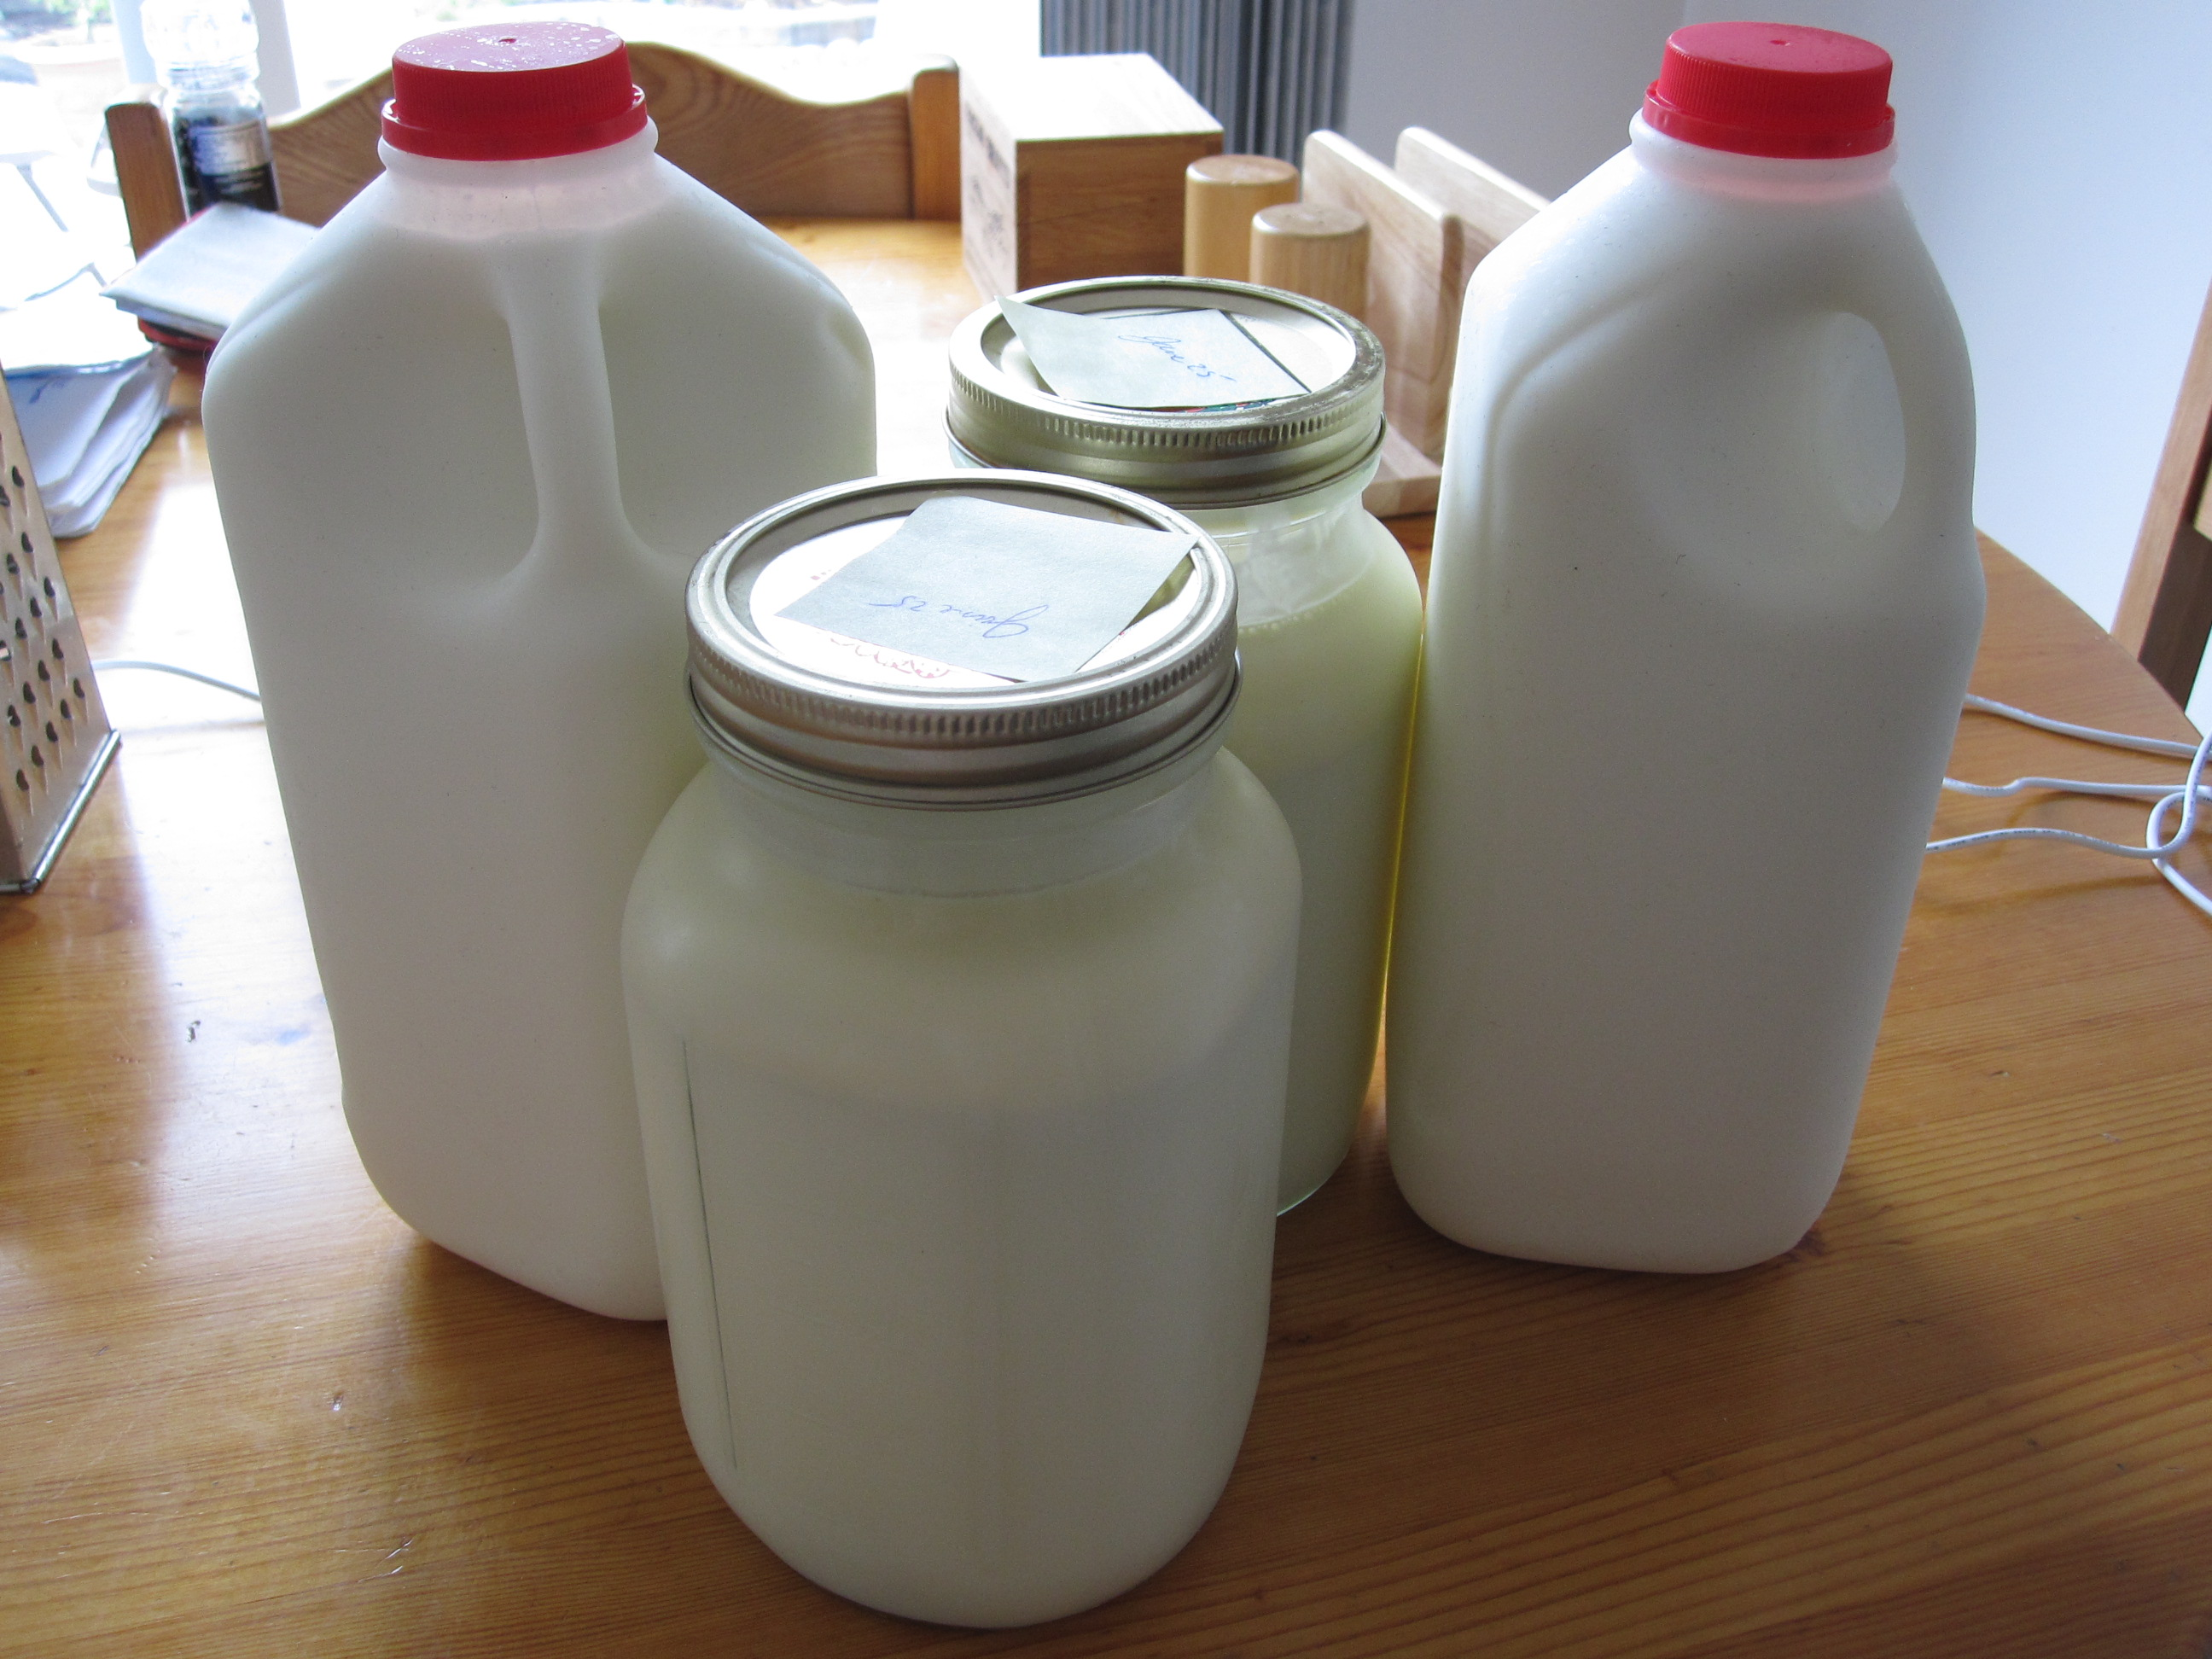 Raw Milk | Raw Milk | Food Safety | CDC